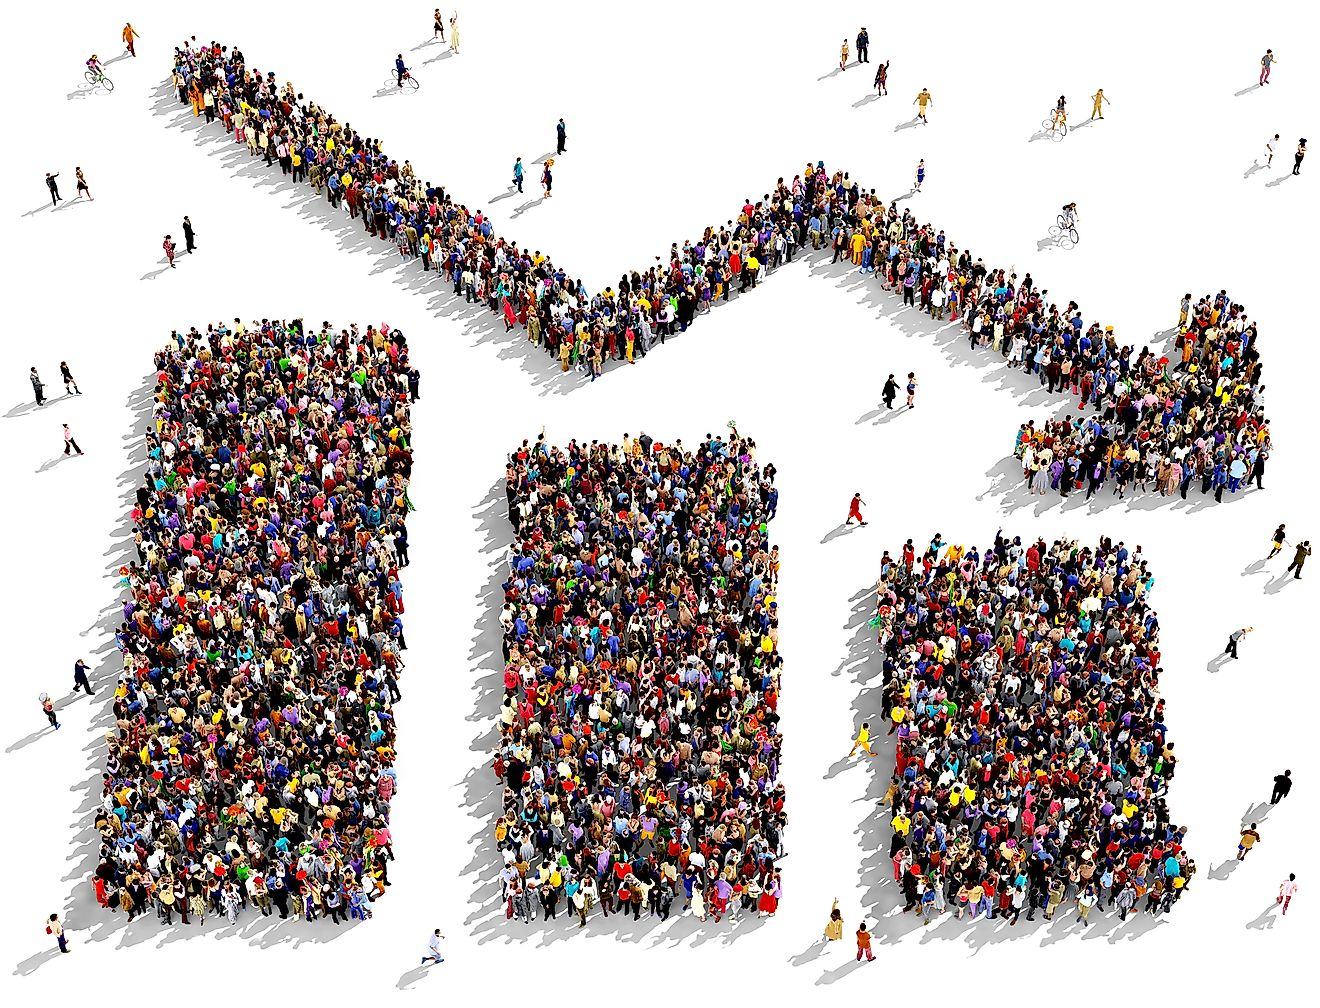 Experts have predicted that by the year 2100, the world population will eventually stabilize and stop increasing in size.